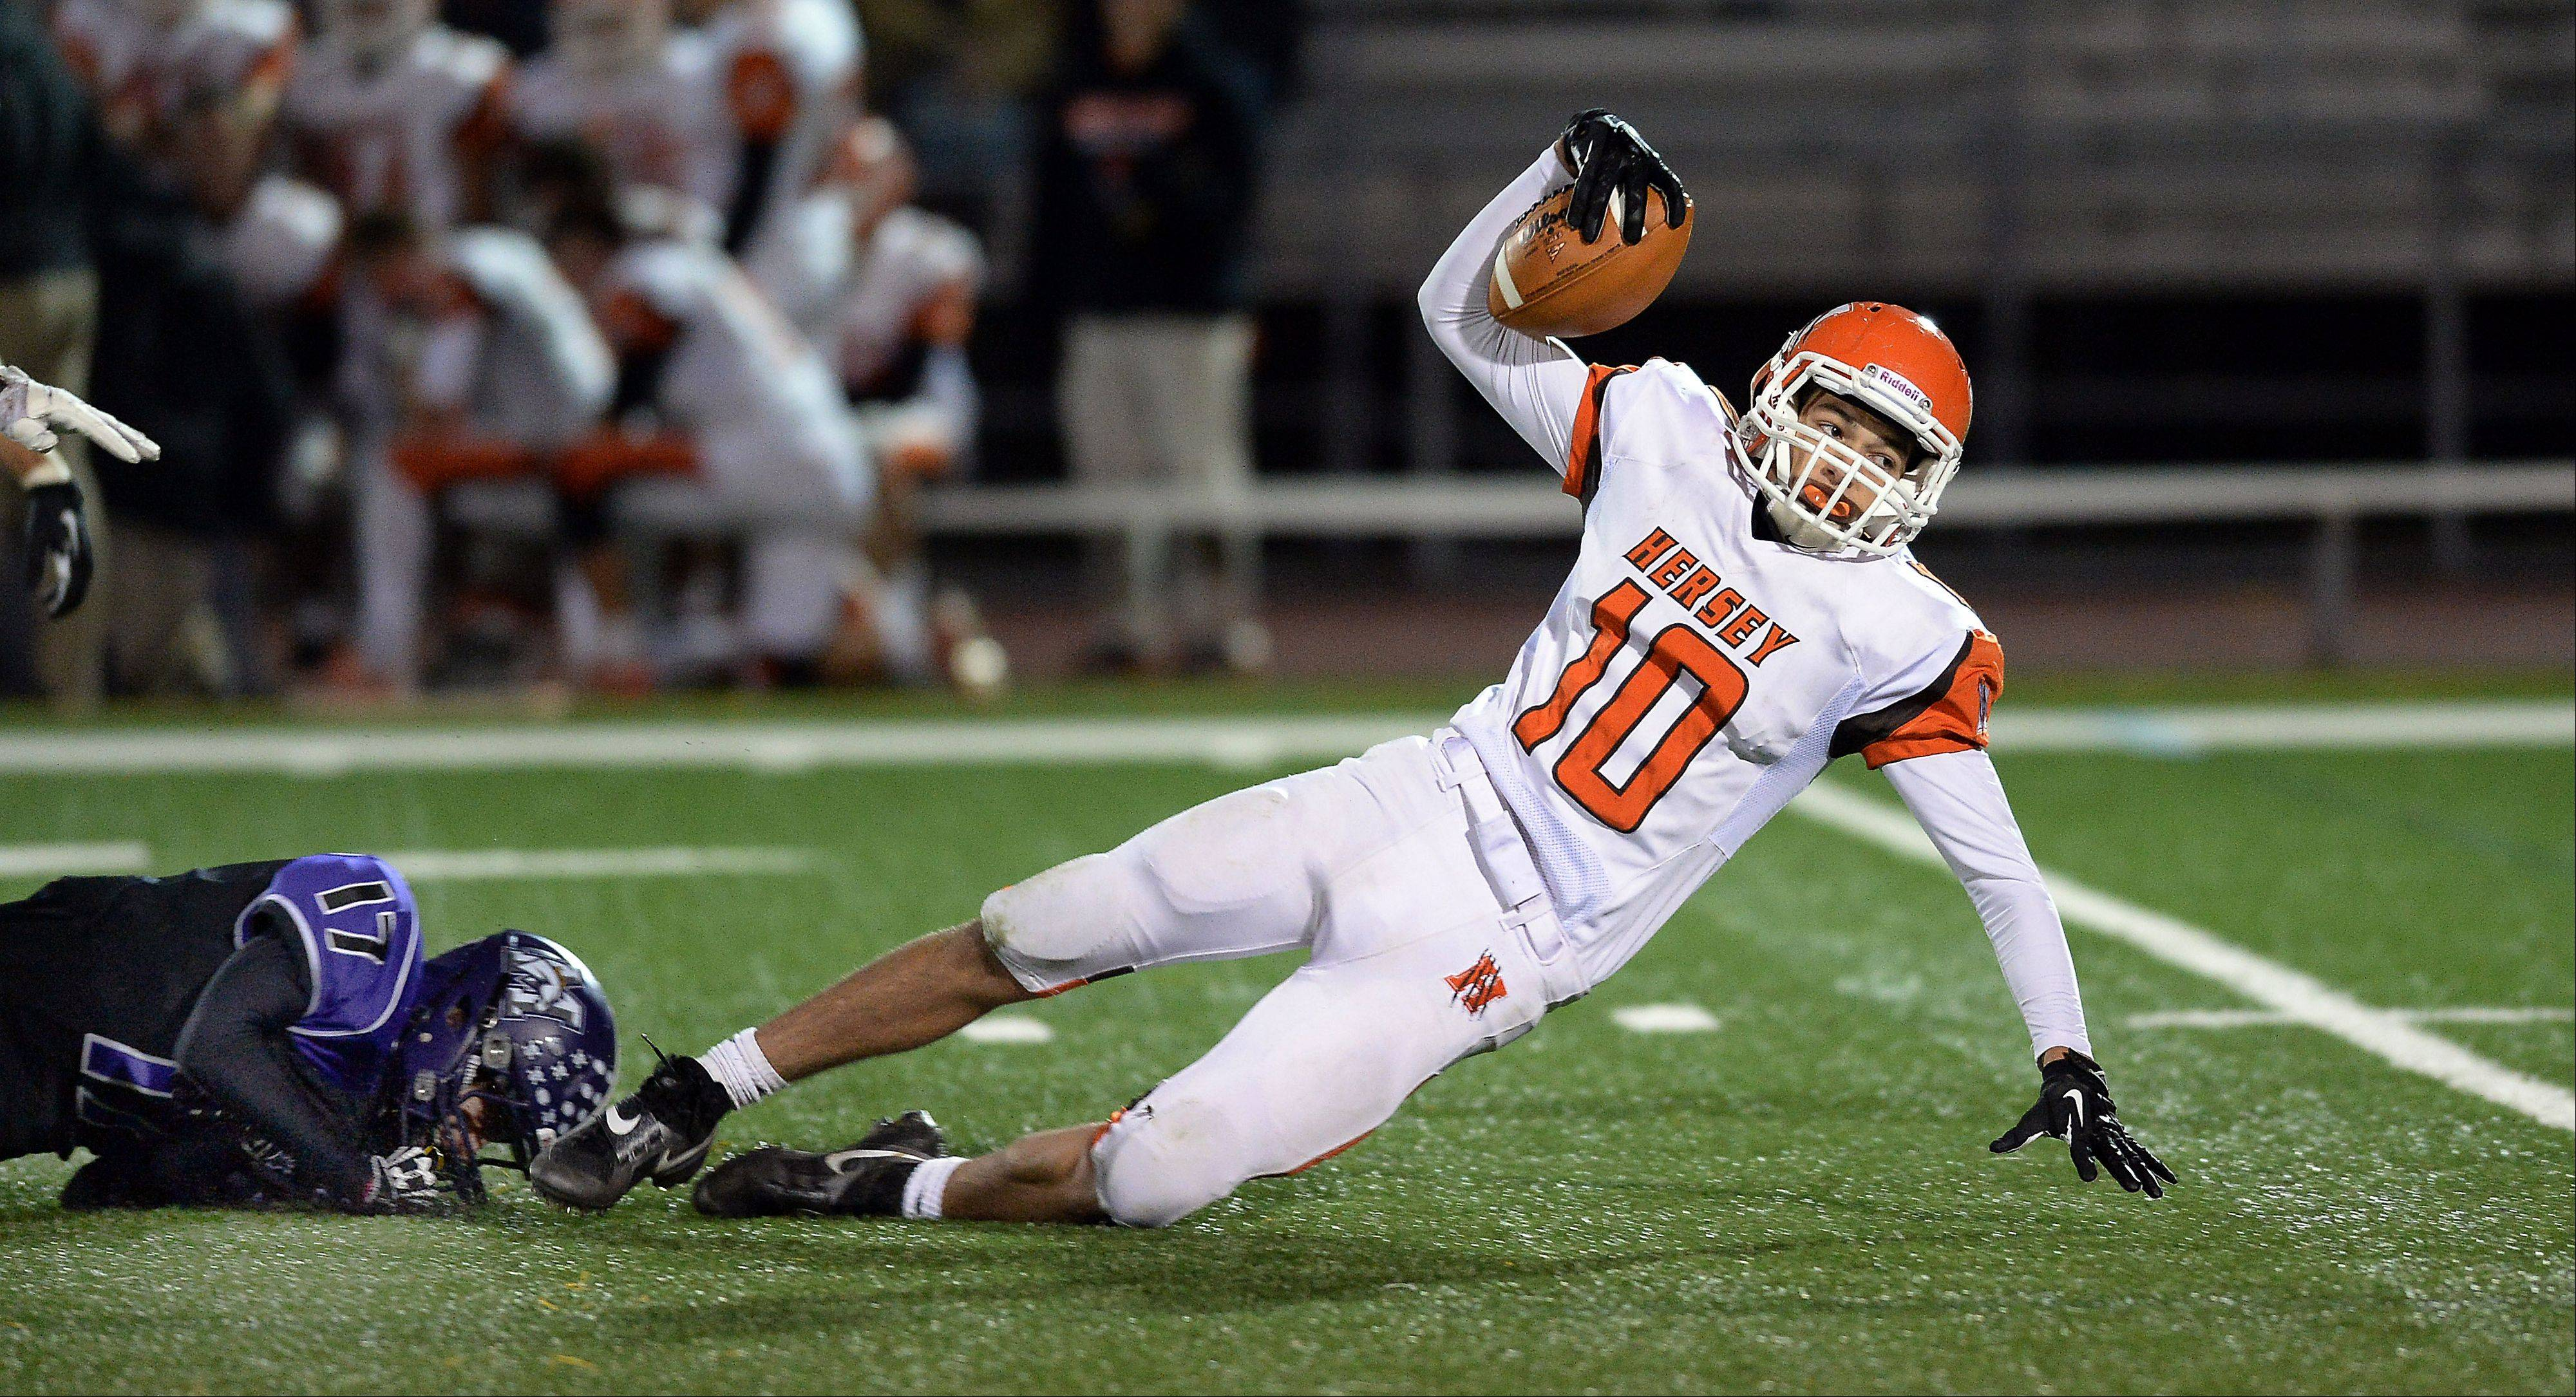 Rolling Meadows' Kevin Adair, on a pass play in the second quarter, stops Hersey's Eddie Miklasz.